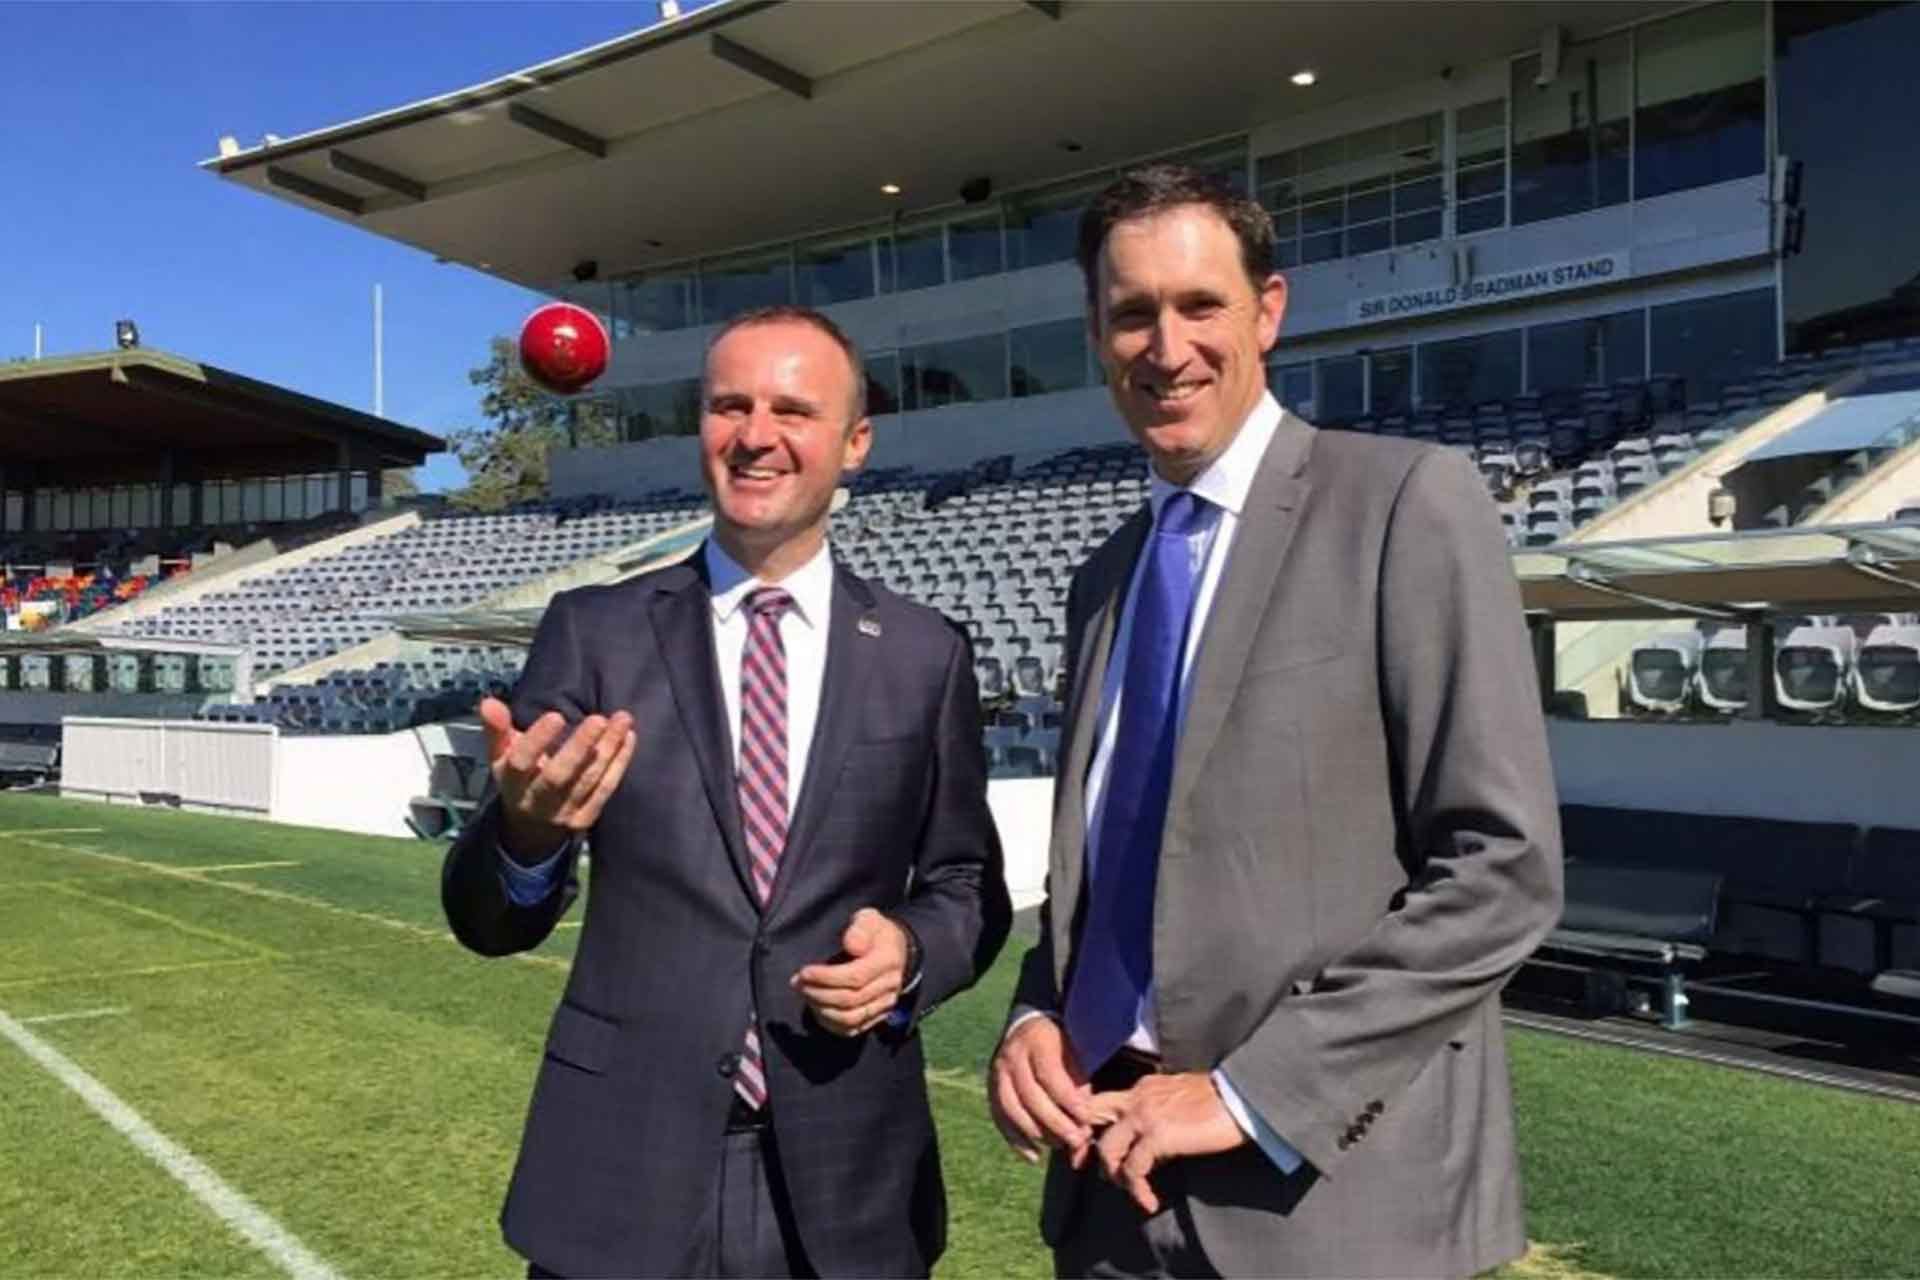 Canberra to host Test Cricket in 2018-19 Season